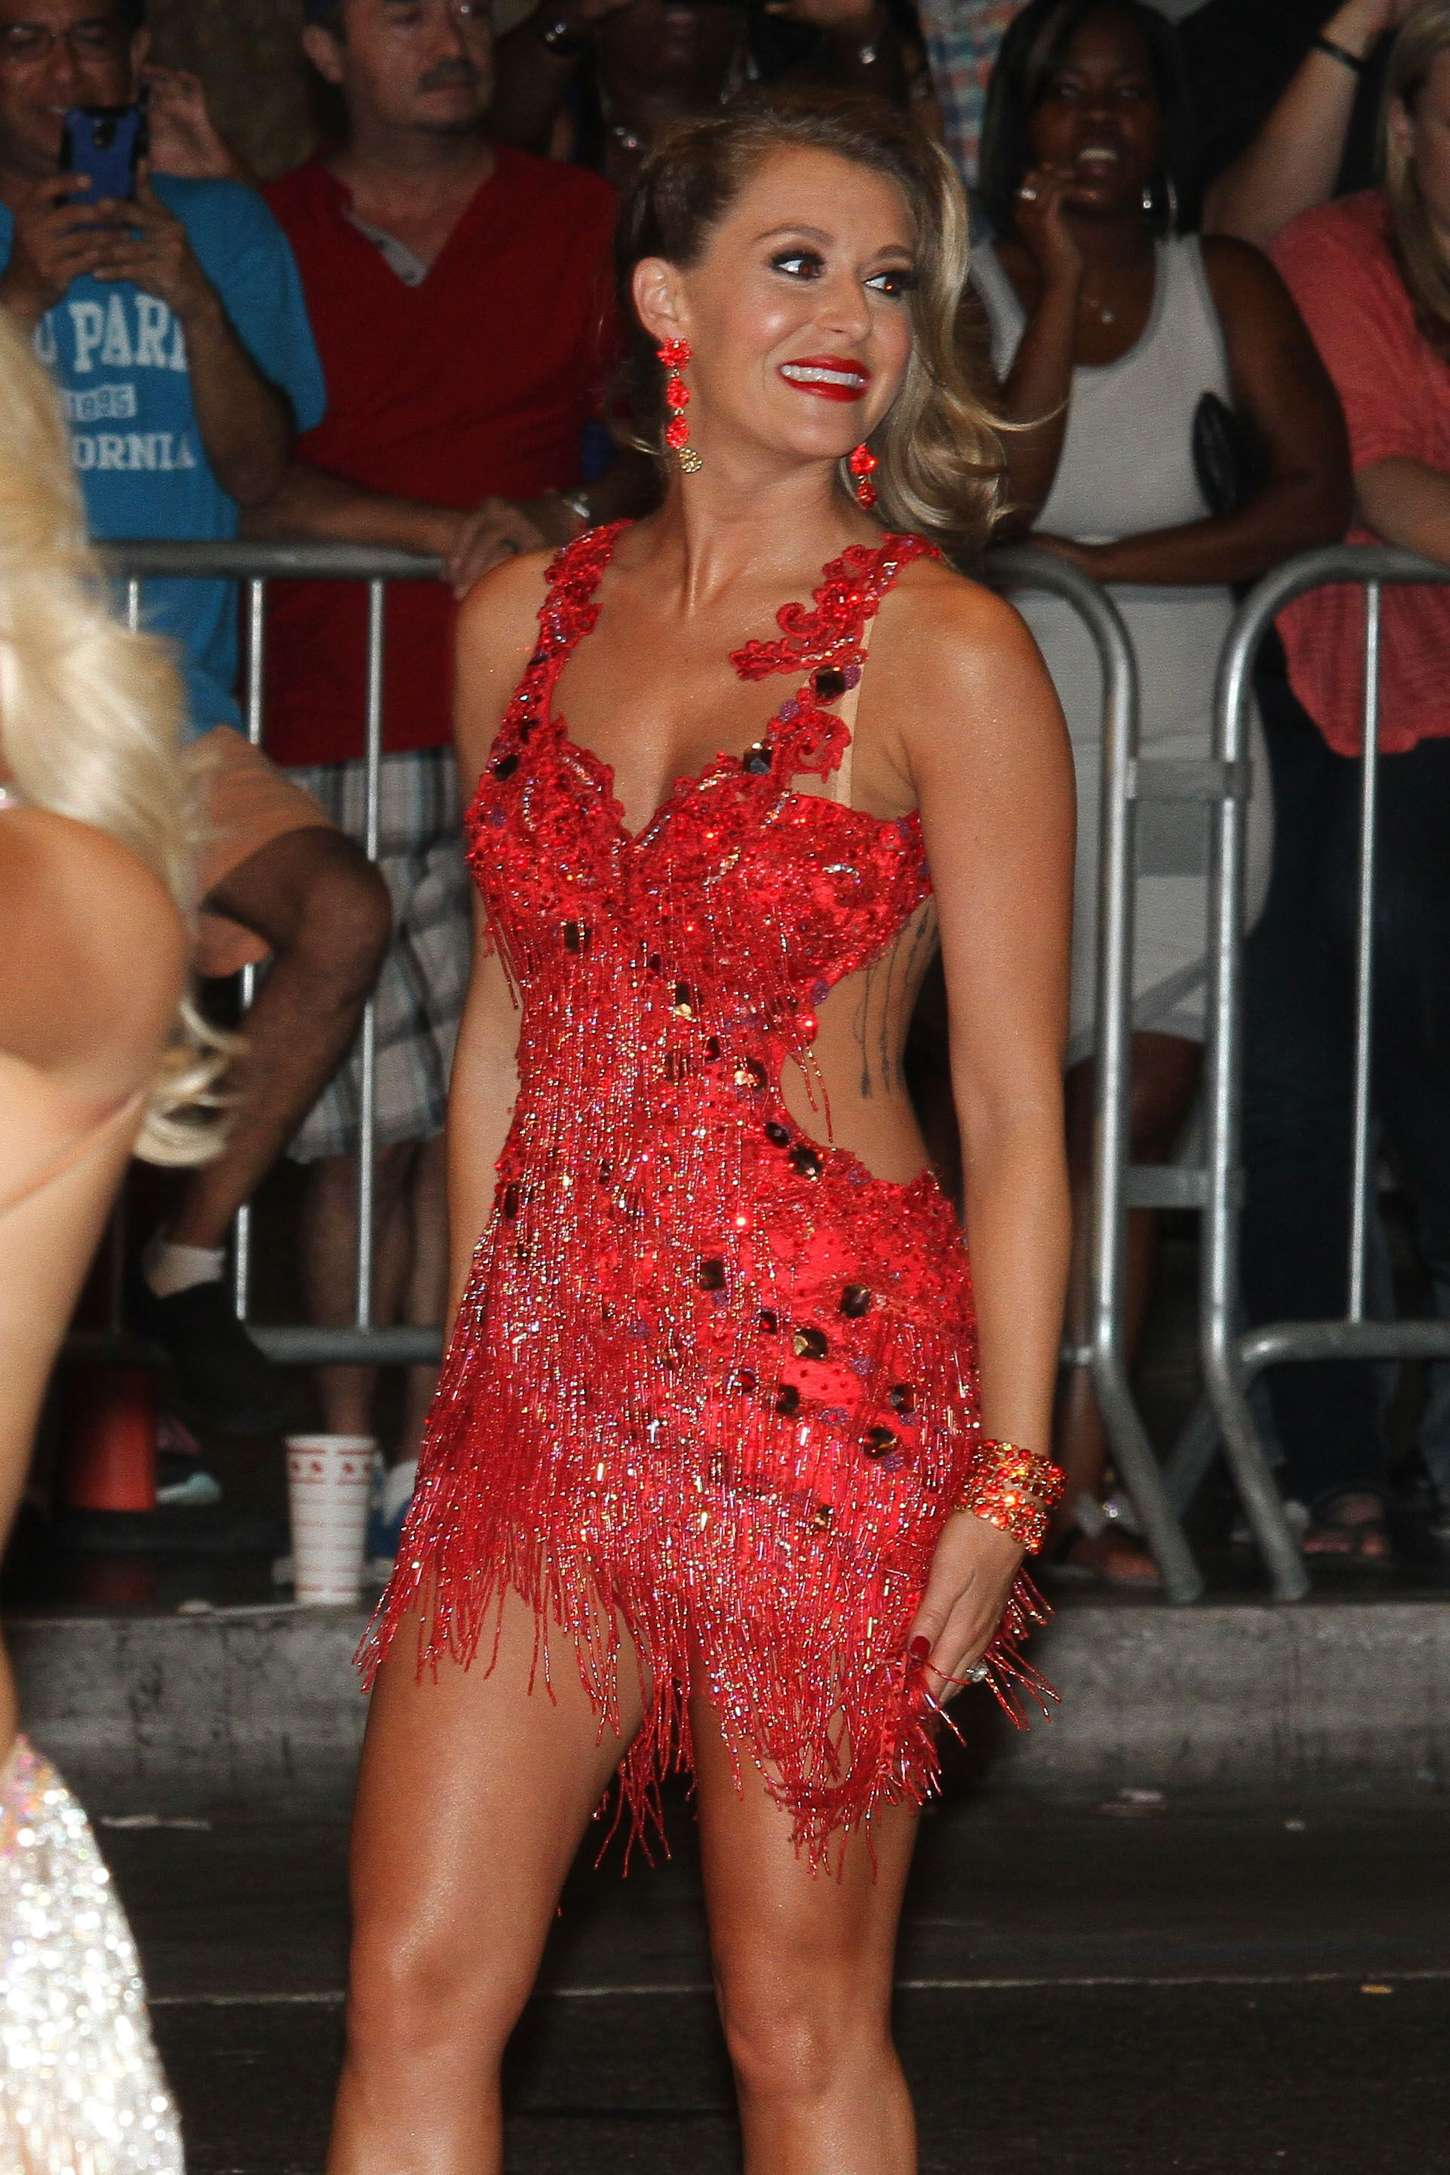 Alexa Vega Shooting A Scene For Dwts In Hollywood Gotceleb